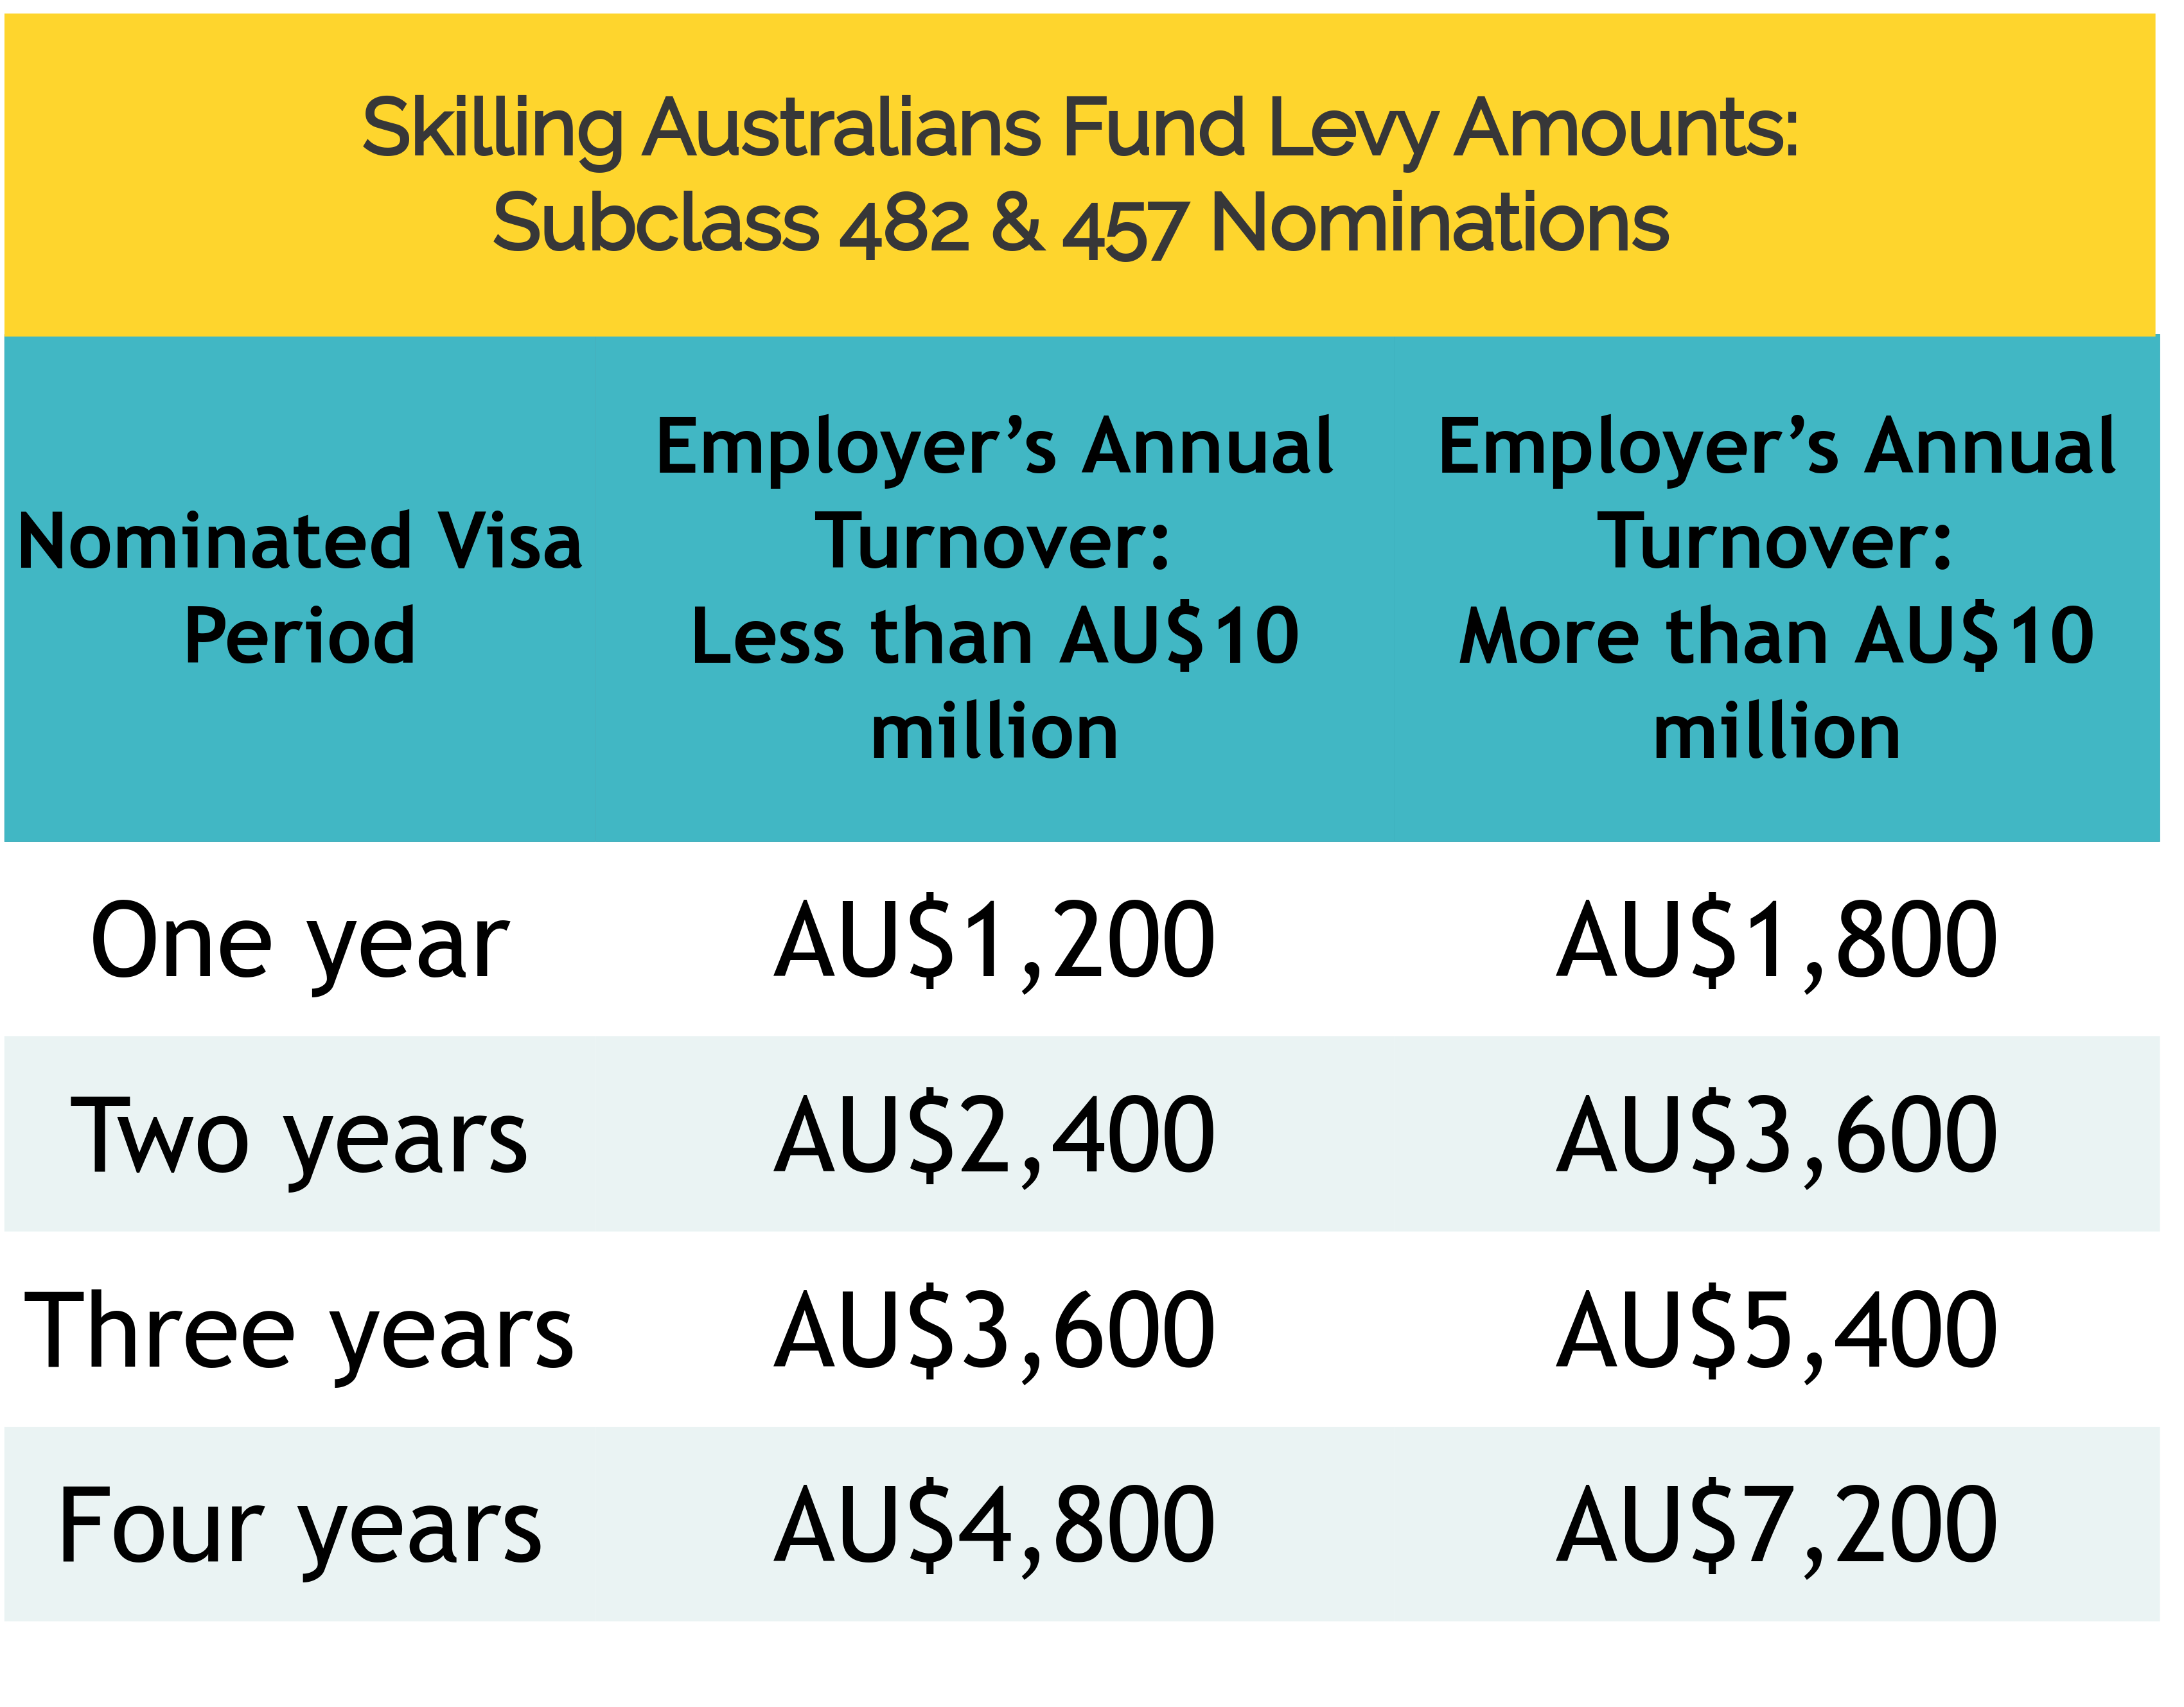 SKILLING AUSTRALIANS FUND (SAF) LEVY FOR 482 AND 457 VISAS